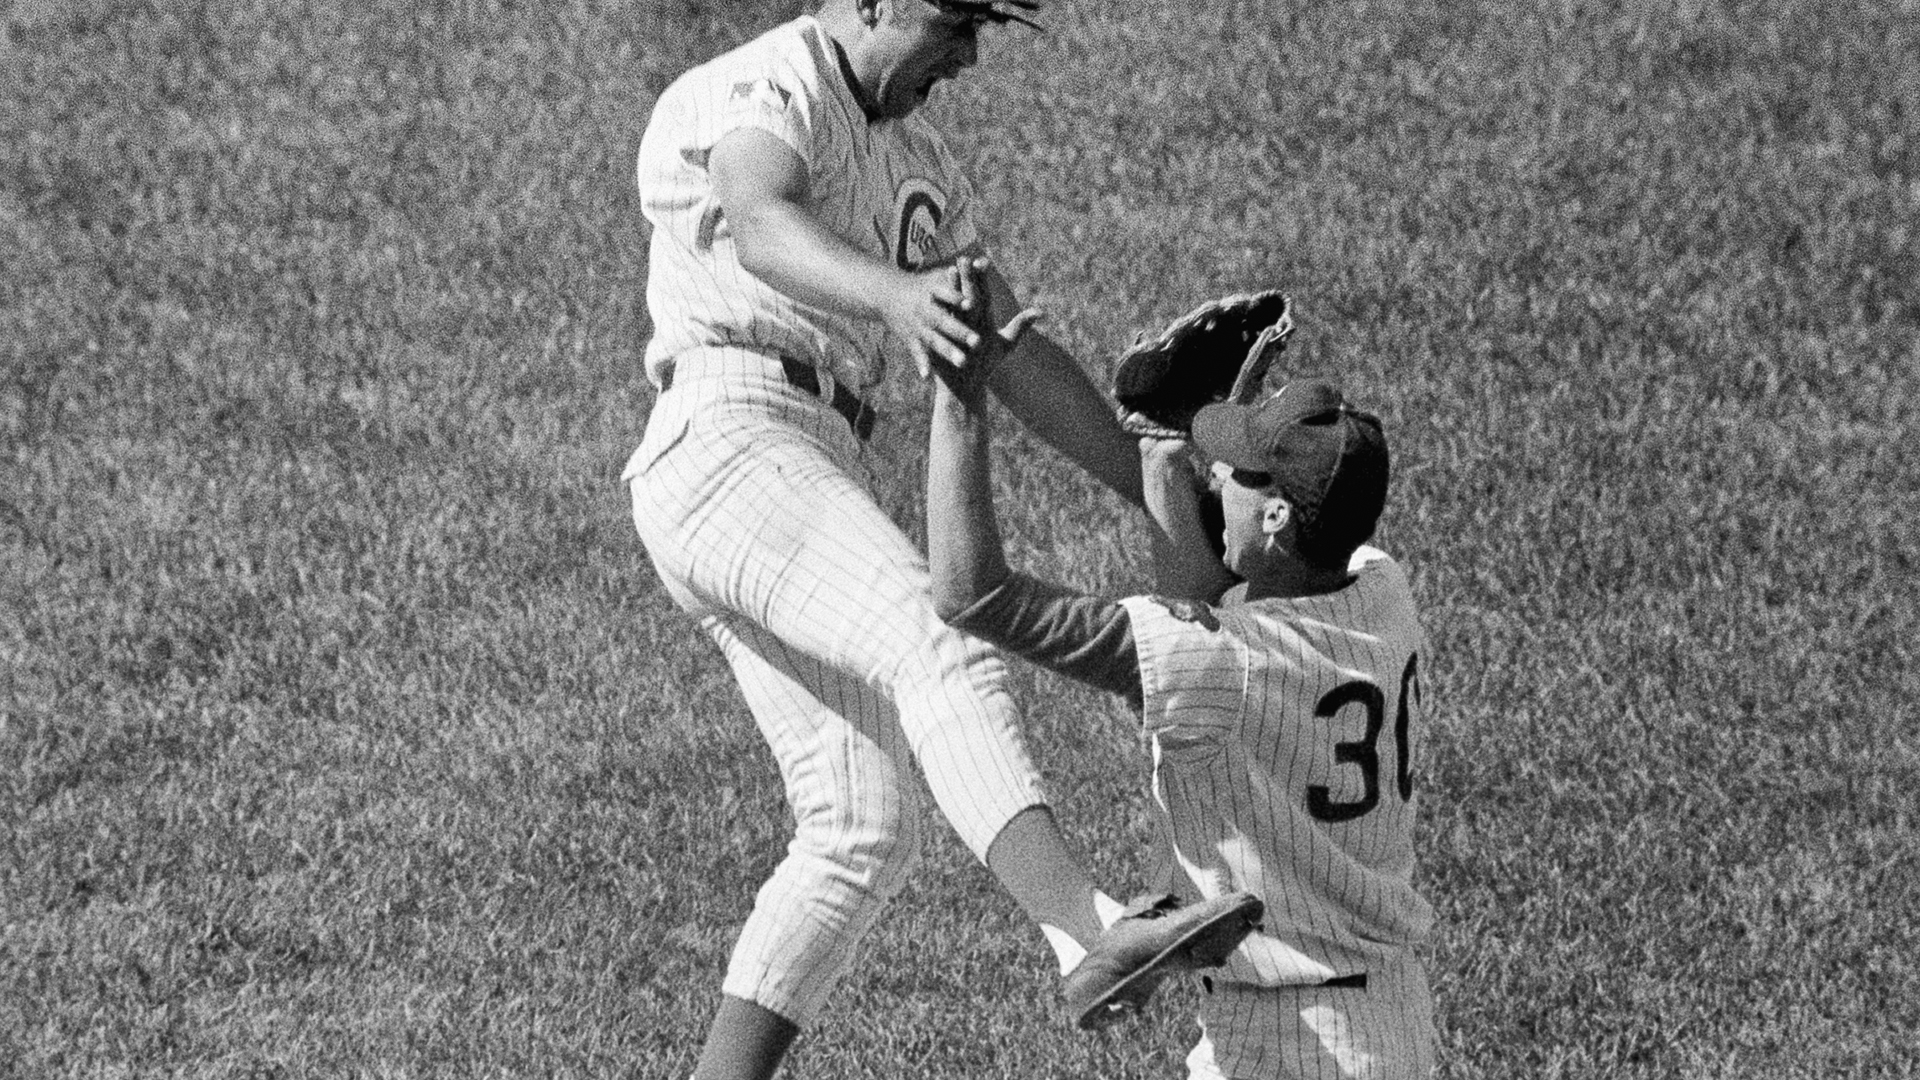 Windy City Legends: Hank Aaron nearly robs Cubs' Ken Holtzman of